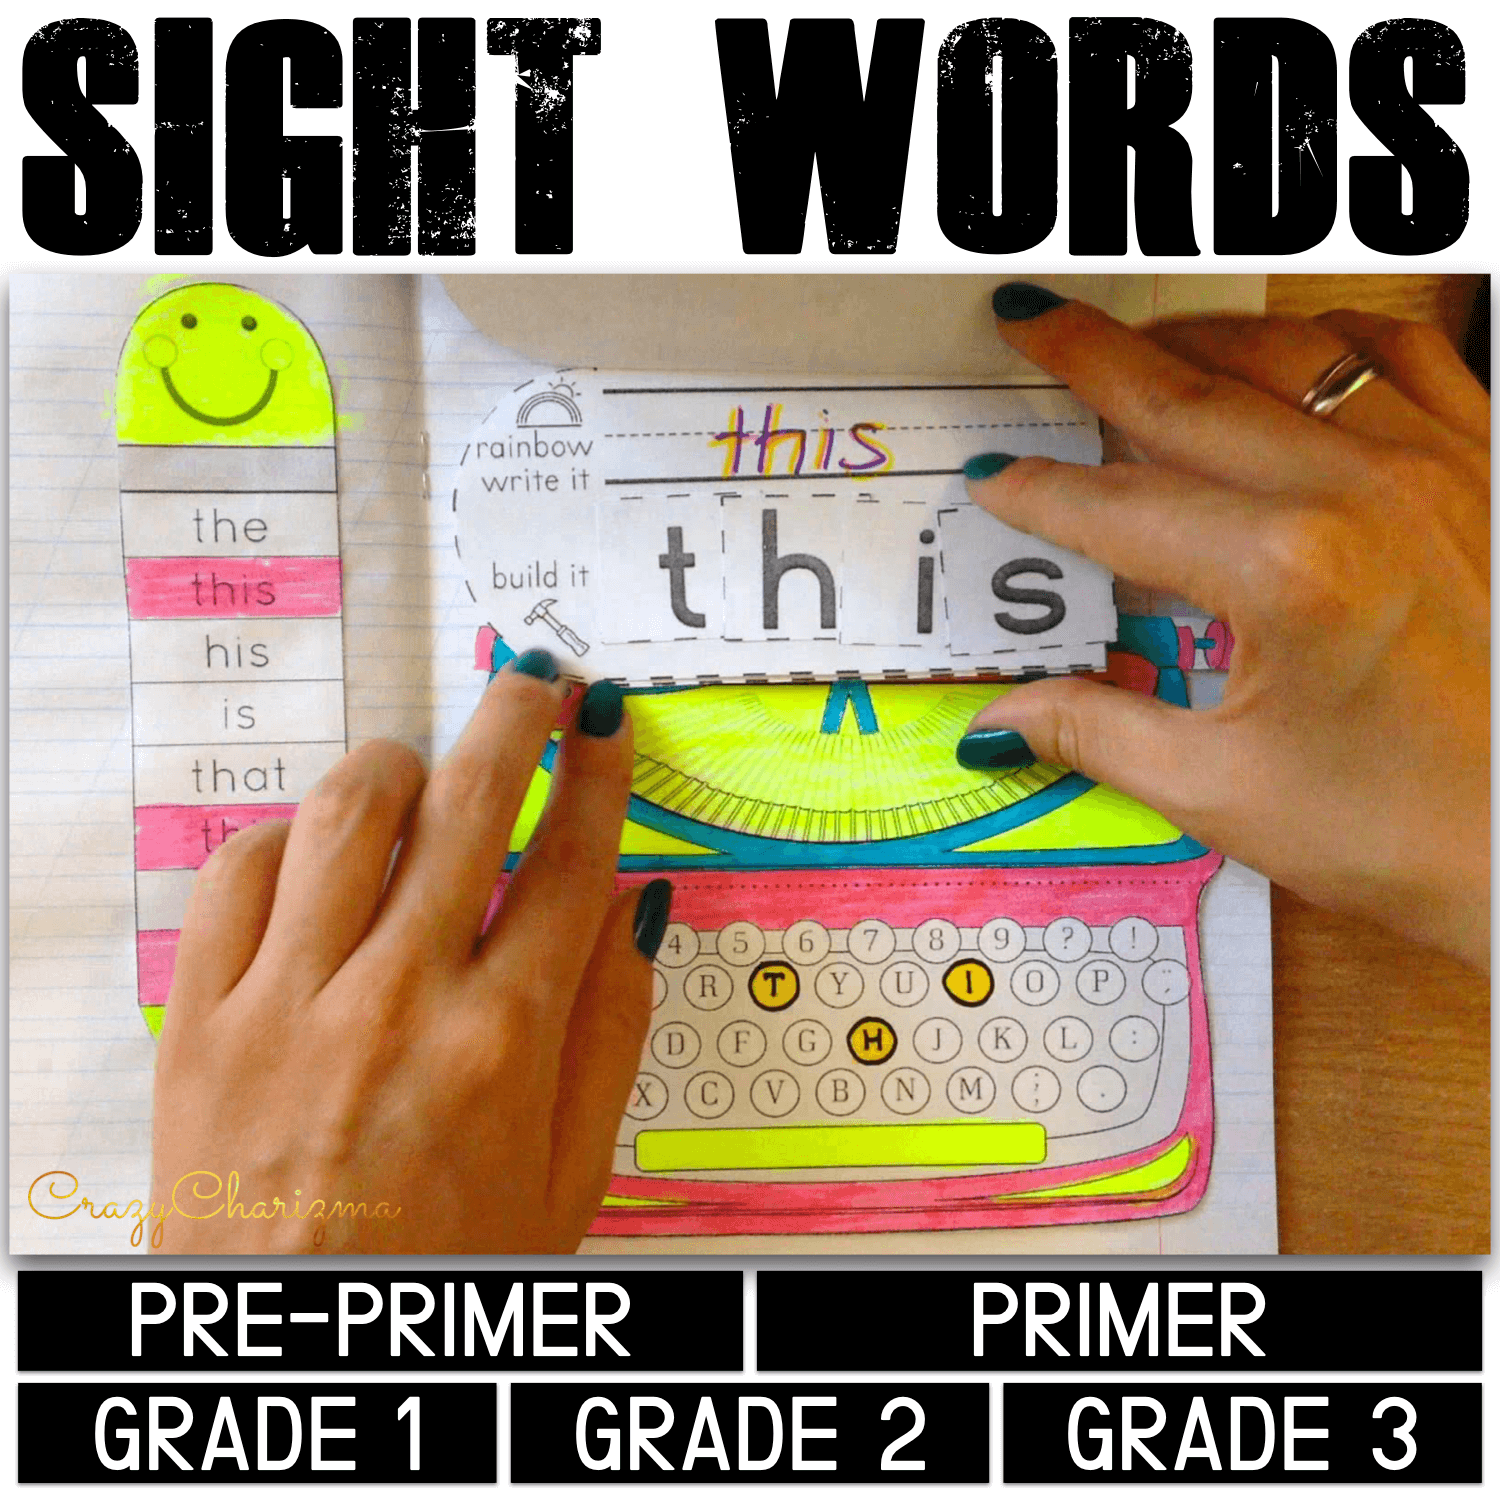 Keep your students excited about learning and practicing their sight words! This Interactive Notebook for Sight Words activities is a fun and hands-on way to cover 220 high frequency words. Increase reading fluency for your struggling readers, ELA's and special needs students. The packet is perfect for advanced prek, kindergarten, first, second and third grade kids.